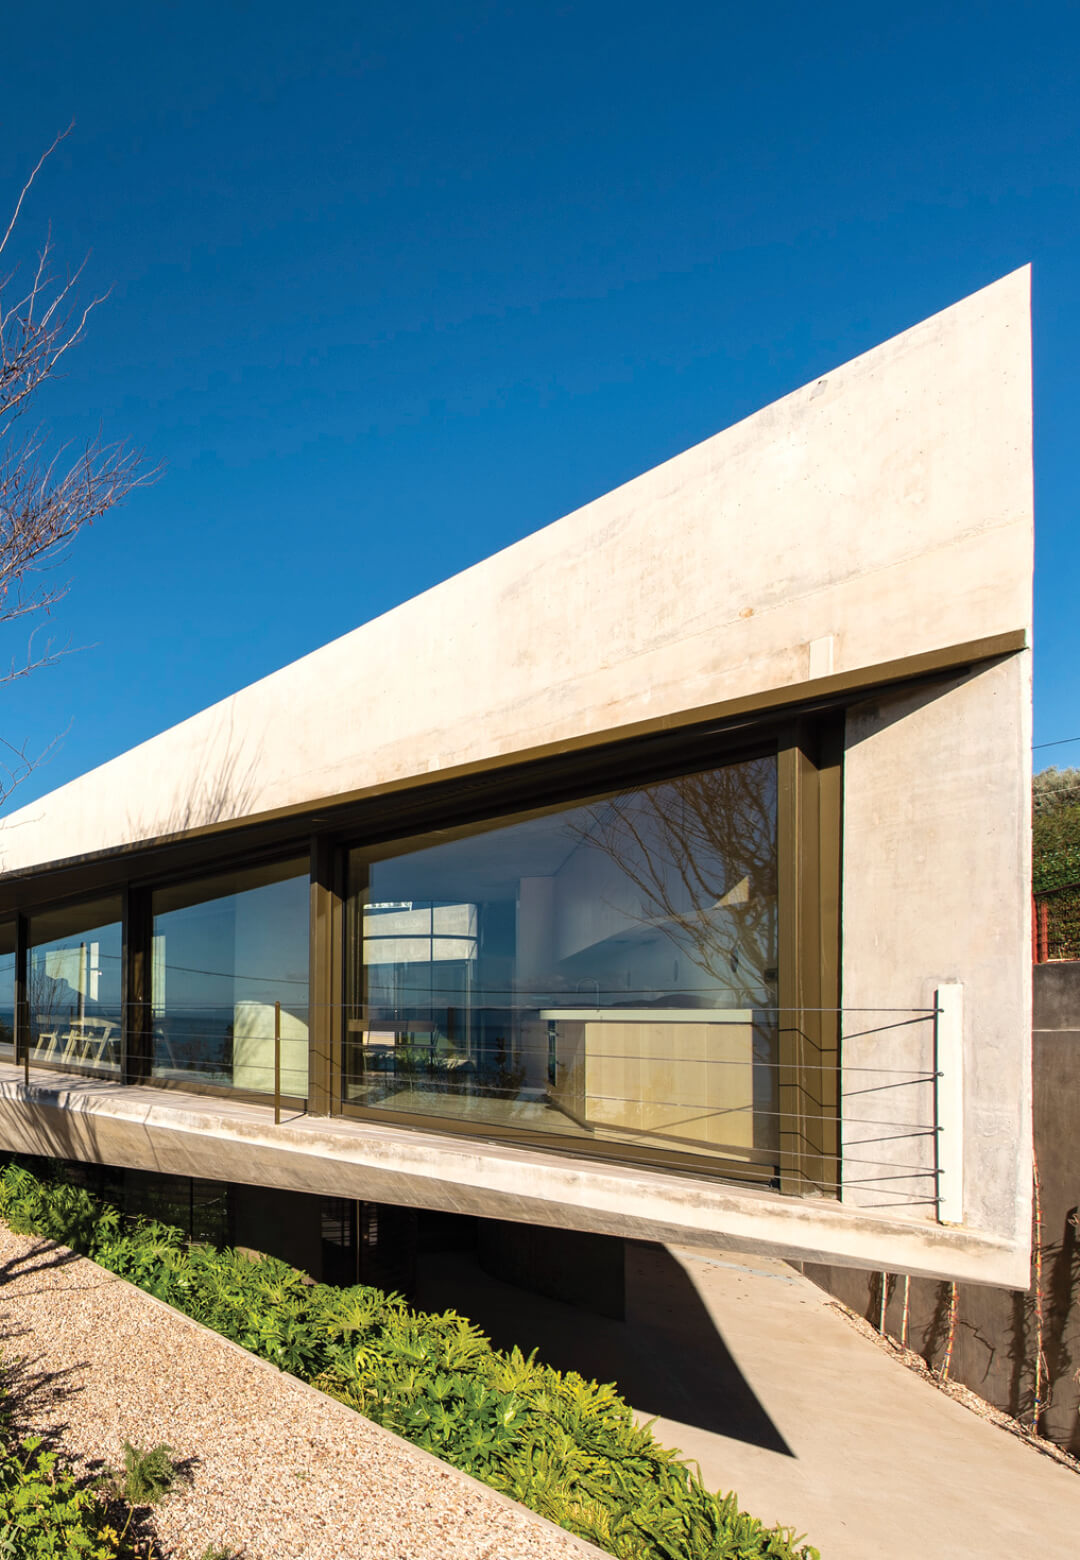 Residence in Euboea in Greece designed by Tense Architecture Network | Residence in Euboea by Tense Architecture Network | STIRworld